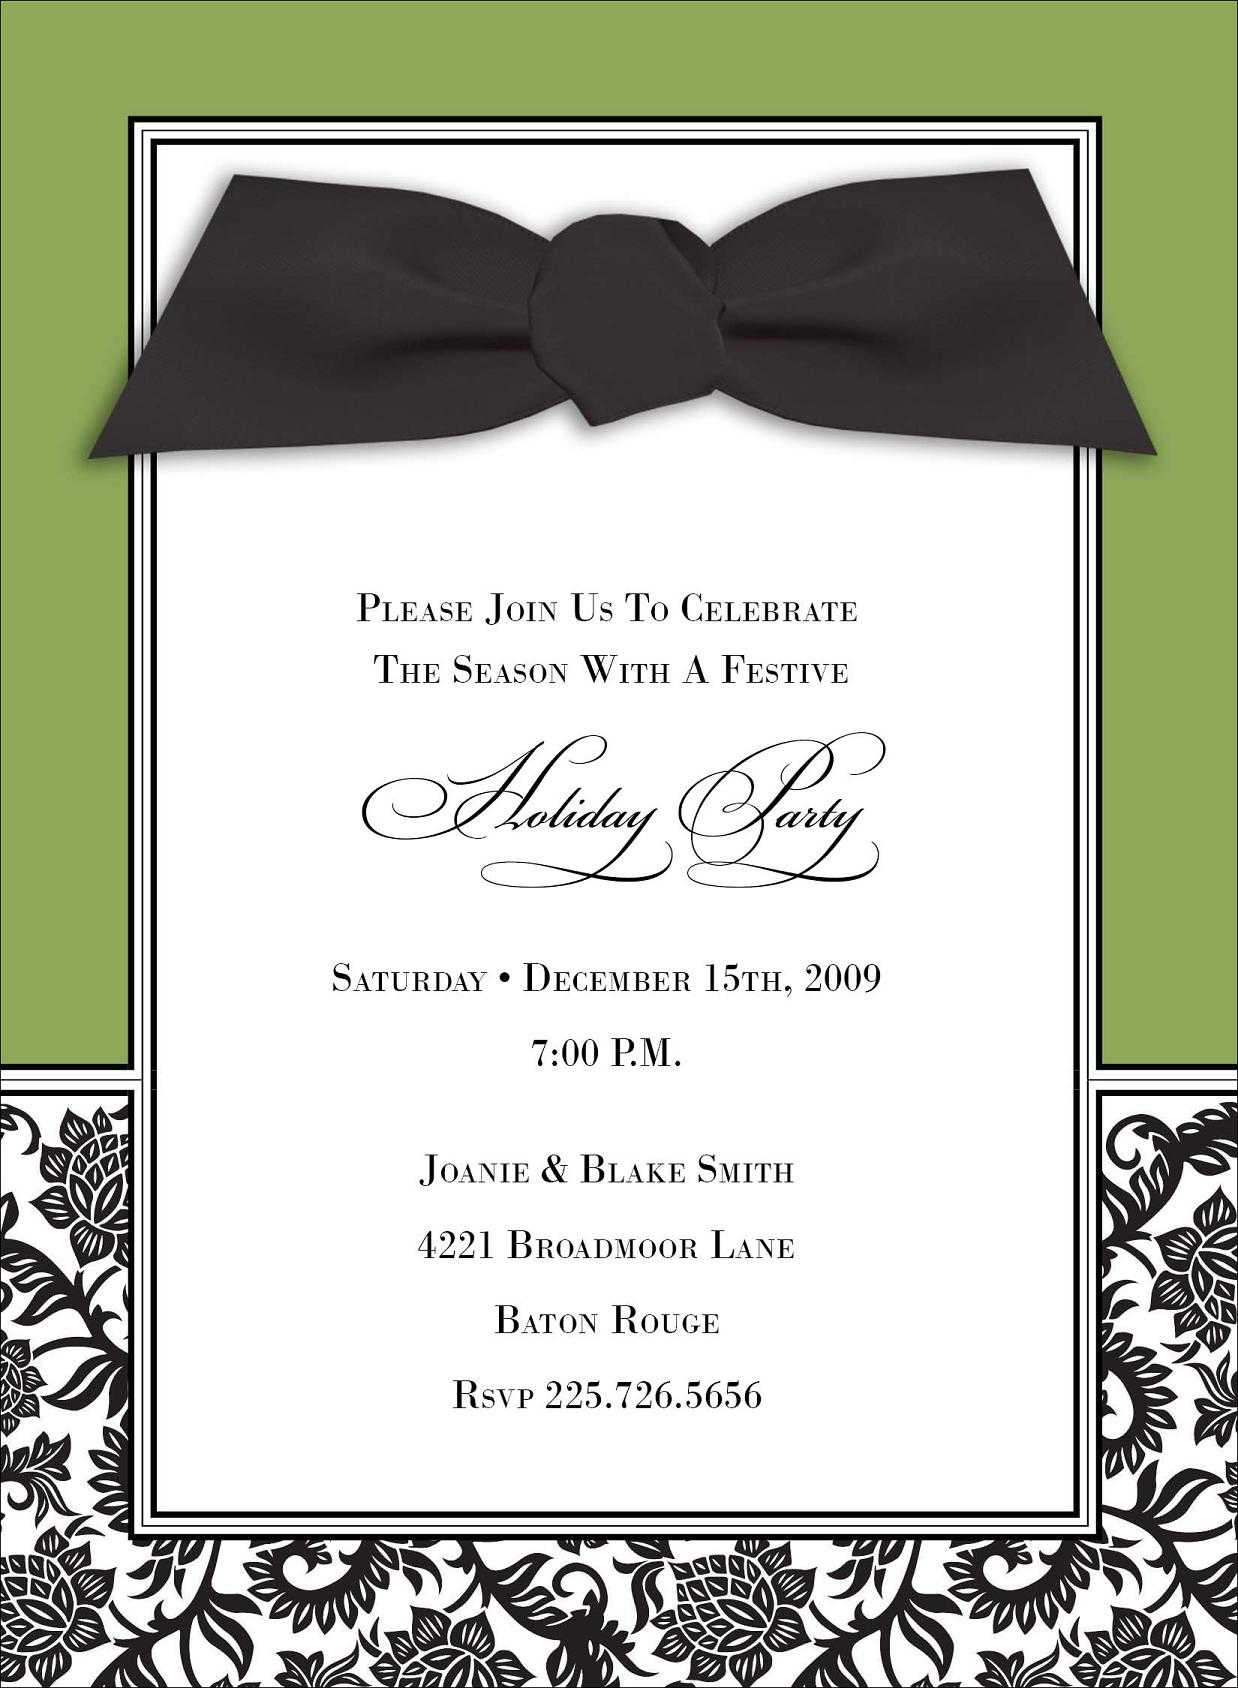 invitation inspiration on pinterest